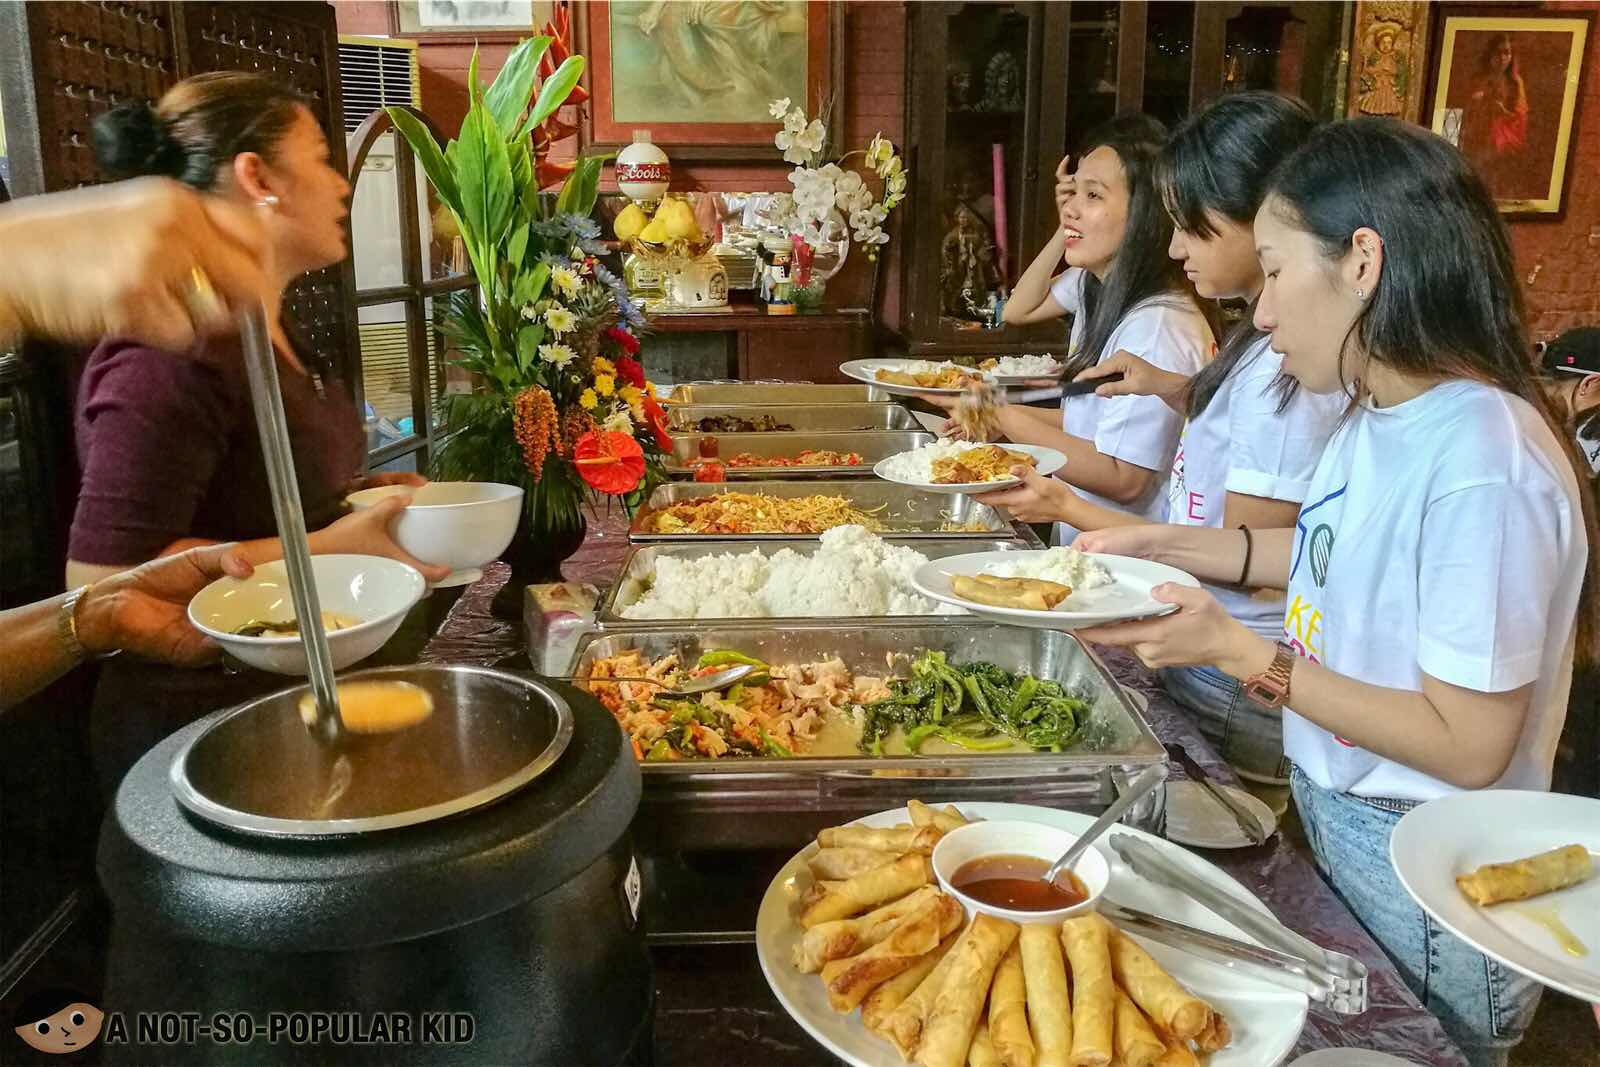 Lunch Buffet in Bahay Ligaya Restaurant, Quezon City